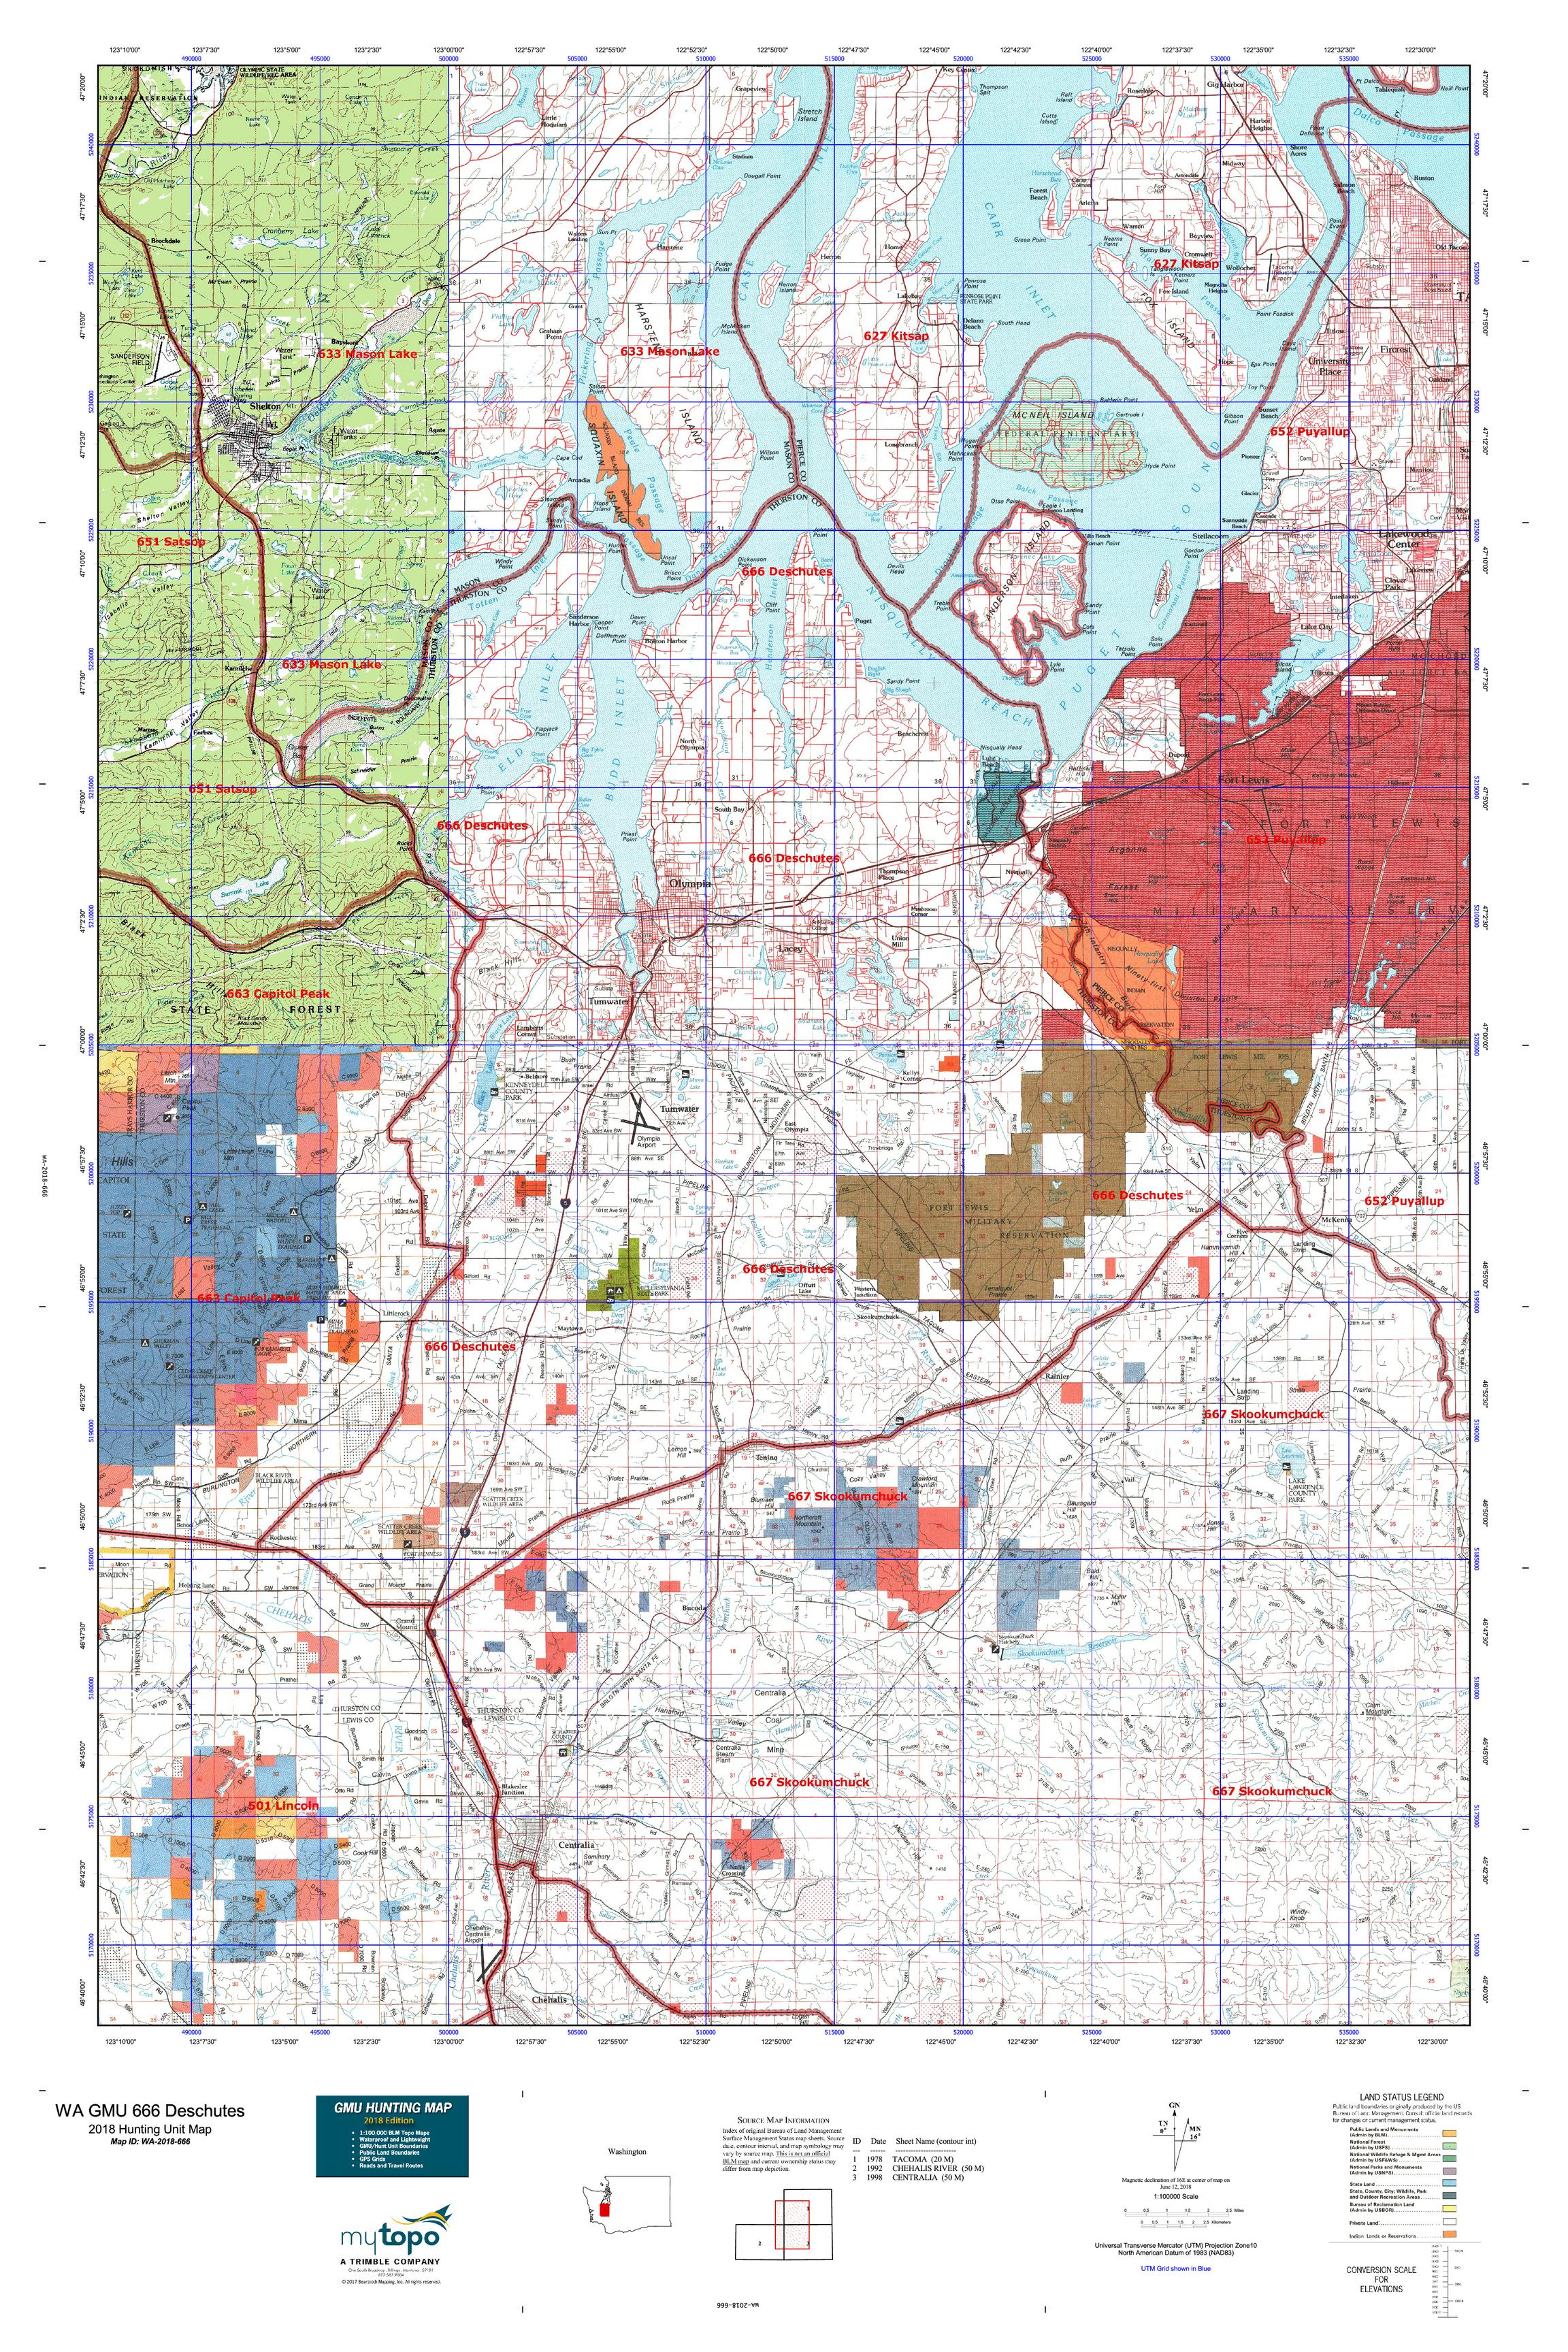 WA GMU 666 Deschutes Map   MyTopo in addition Washington Recreation Map   Benchmark Maps together with StatisticalMaps as well 21 elegant Washington Hunting Gmu Map – bnhspine furthermore Best Of Washington State Land Ownership Map   The Giant Maps in addition Washington Recreation Map   Benchmark Maps   Avenza Maps furthermore 89 Cute Gallery Of Wa State Gmu Maps   maps in addition Washington Gmu Map maps wa state maps usa map images 793 X 556 likewise Vienna   Fairfax  GMU  Area Map   Washington DC Metro Gift Store as well State West Coast Map Washington Maps Online – wineandmore info additionally WA GMU 124 Mount Spokane Map   MyTopo furthermore Olympic National Forest   Maps   Publications moreover WDFW seeks public's istance to monitor hoof disease in elk likewise Washington Recreation Map   Benchmark Maps   Avenza Maps as well Washington Apple Pi meeting map  GMU also Capitol Forest Washington. on washington gmu maps